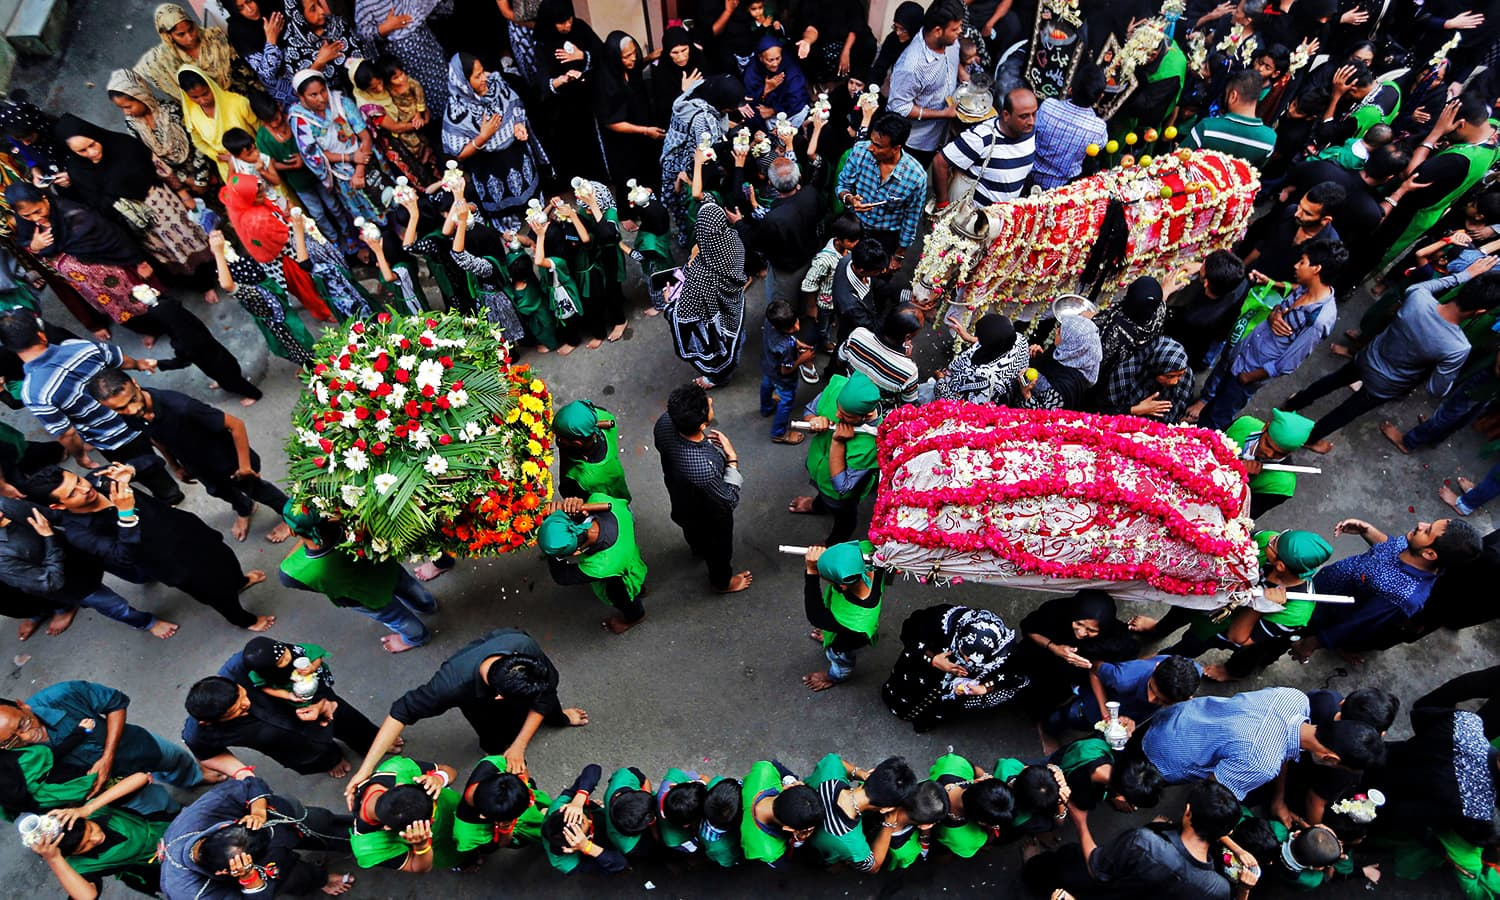 Mourners take part in a Muharram procession in Ahmedabad, India. ─ Reuters